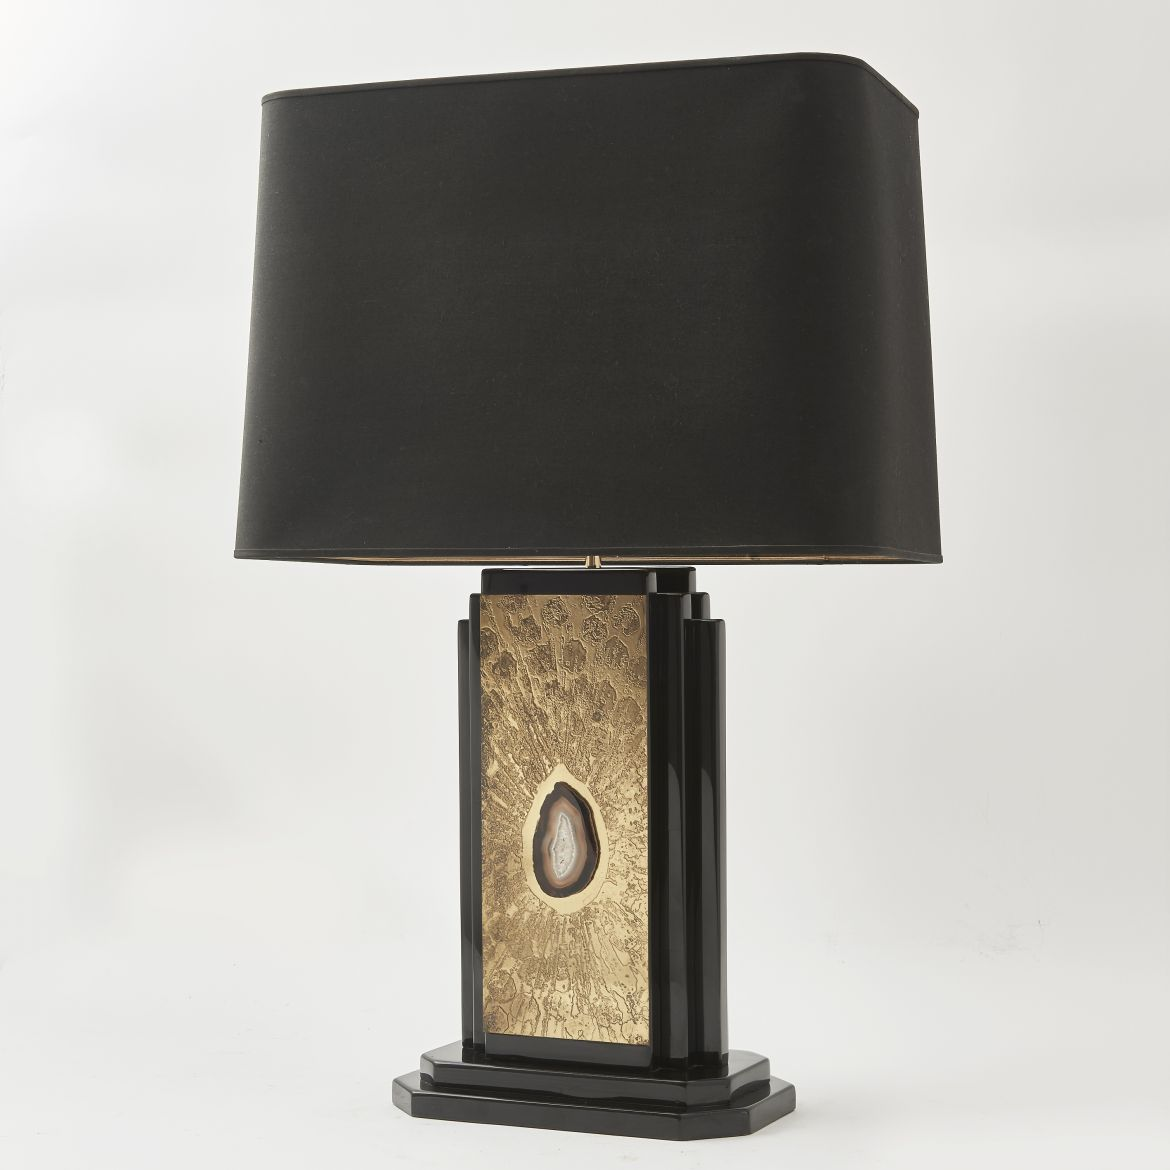 1970s George Mathias Lamp